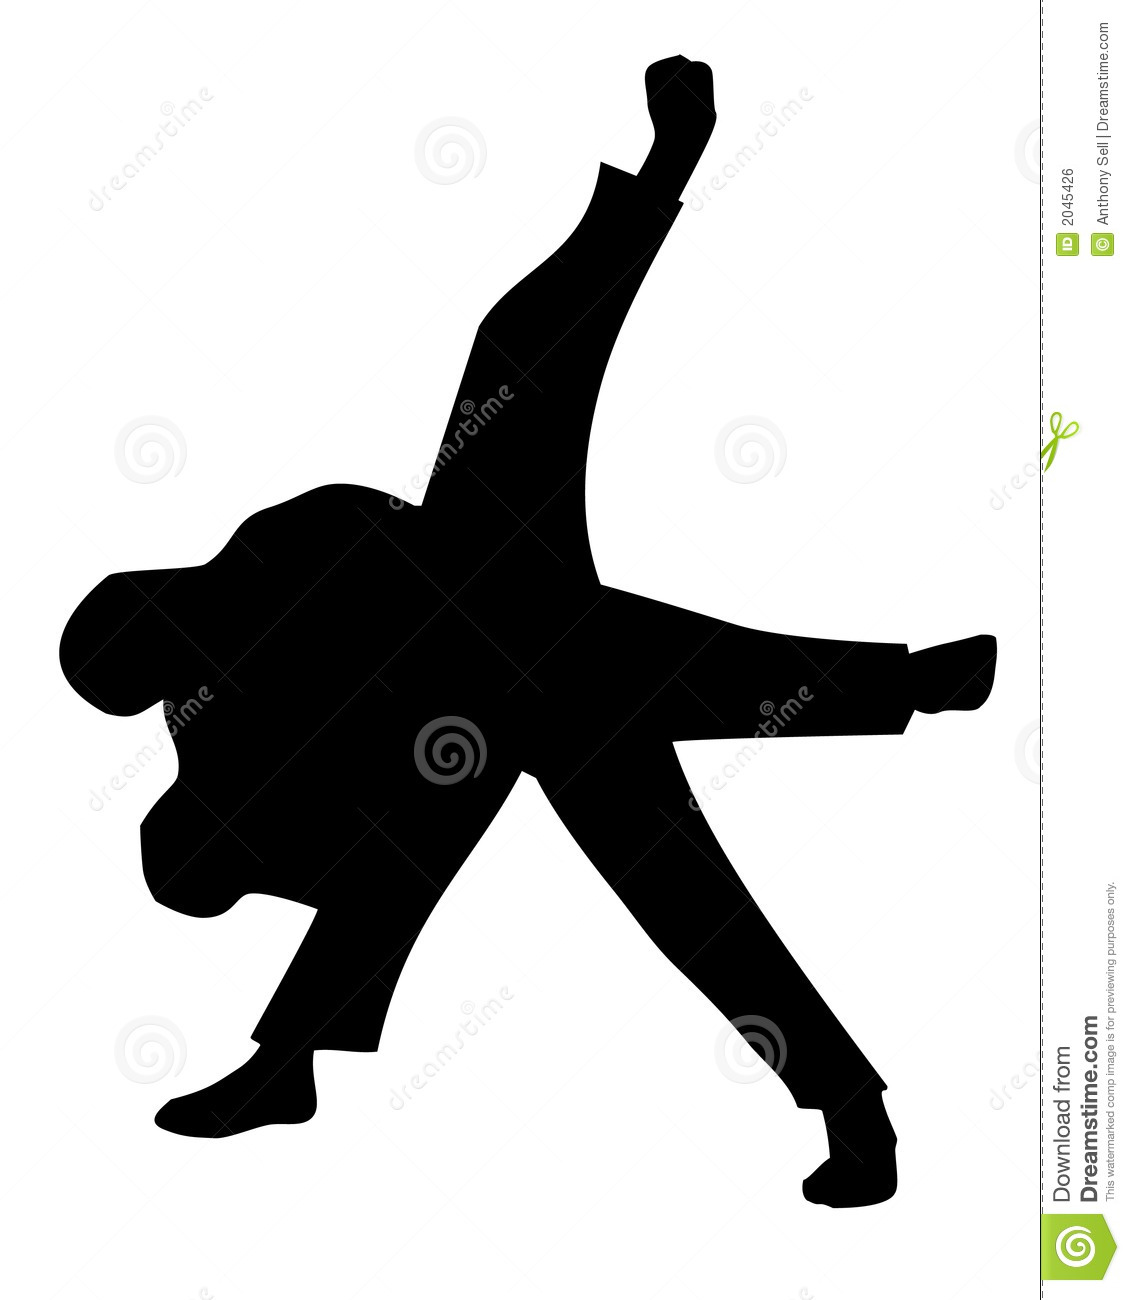 Judo Throw Royalty Free Stock Image - Image: 2045426